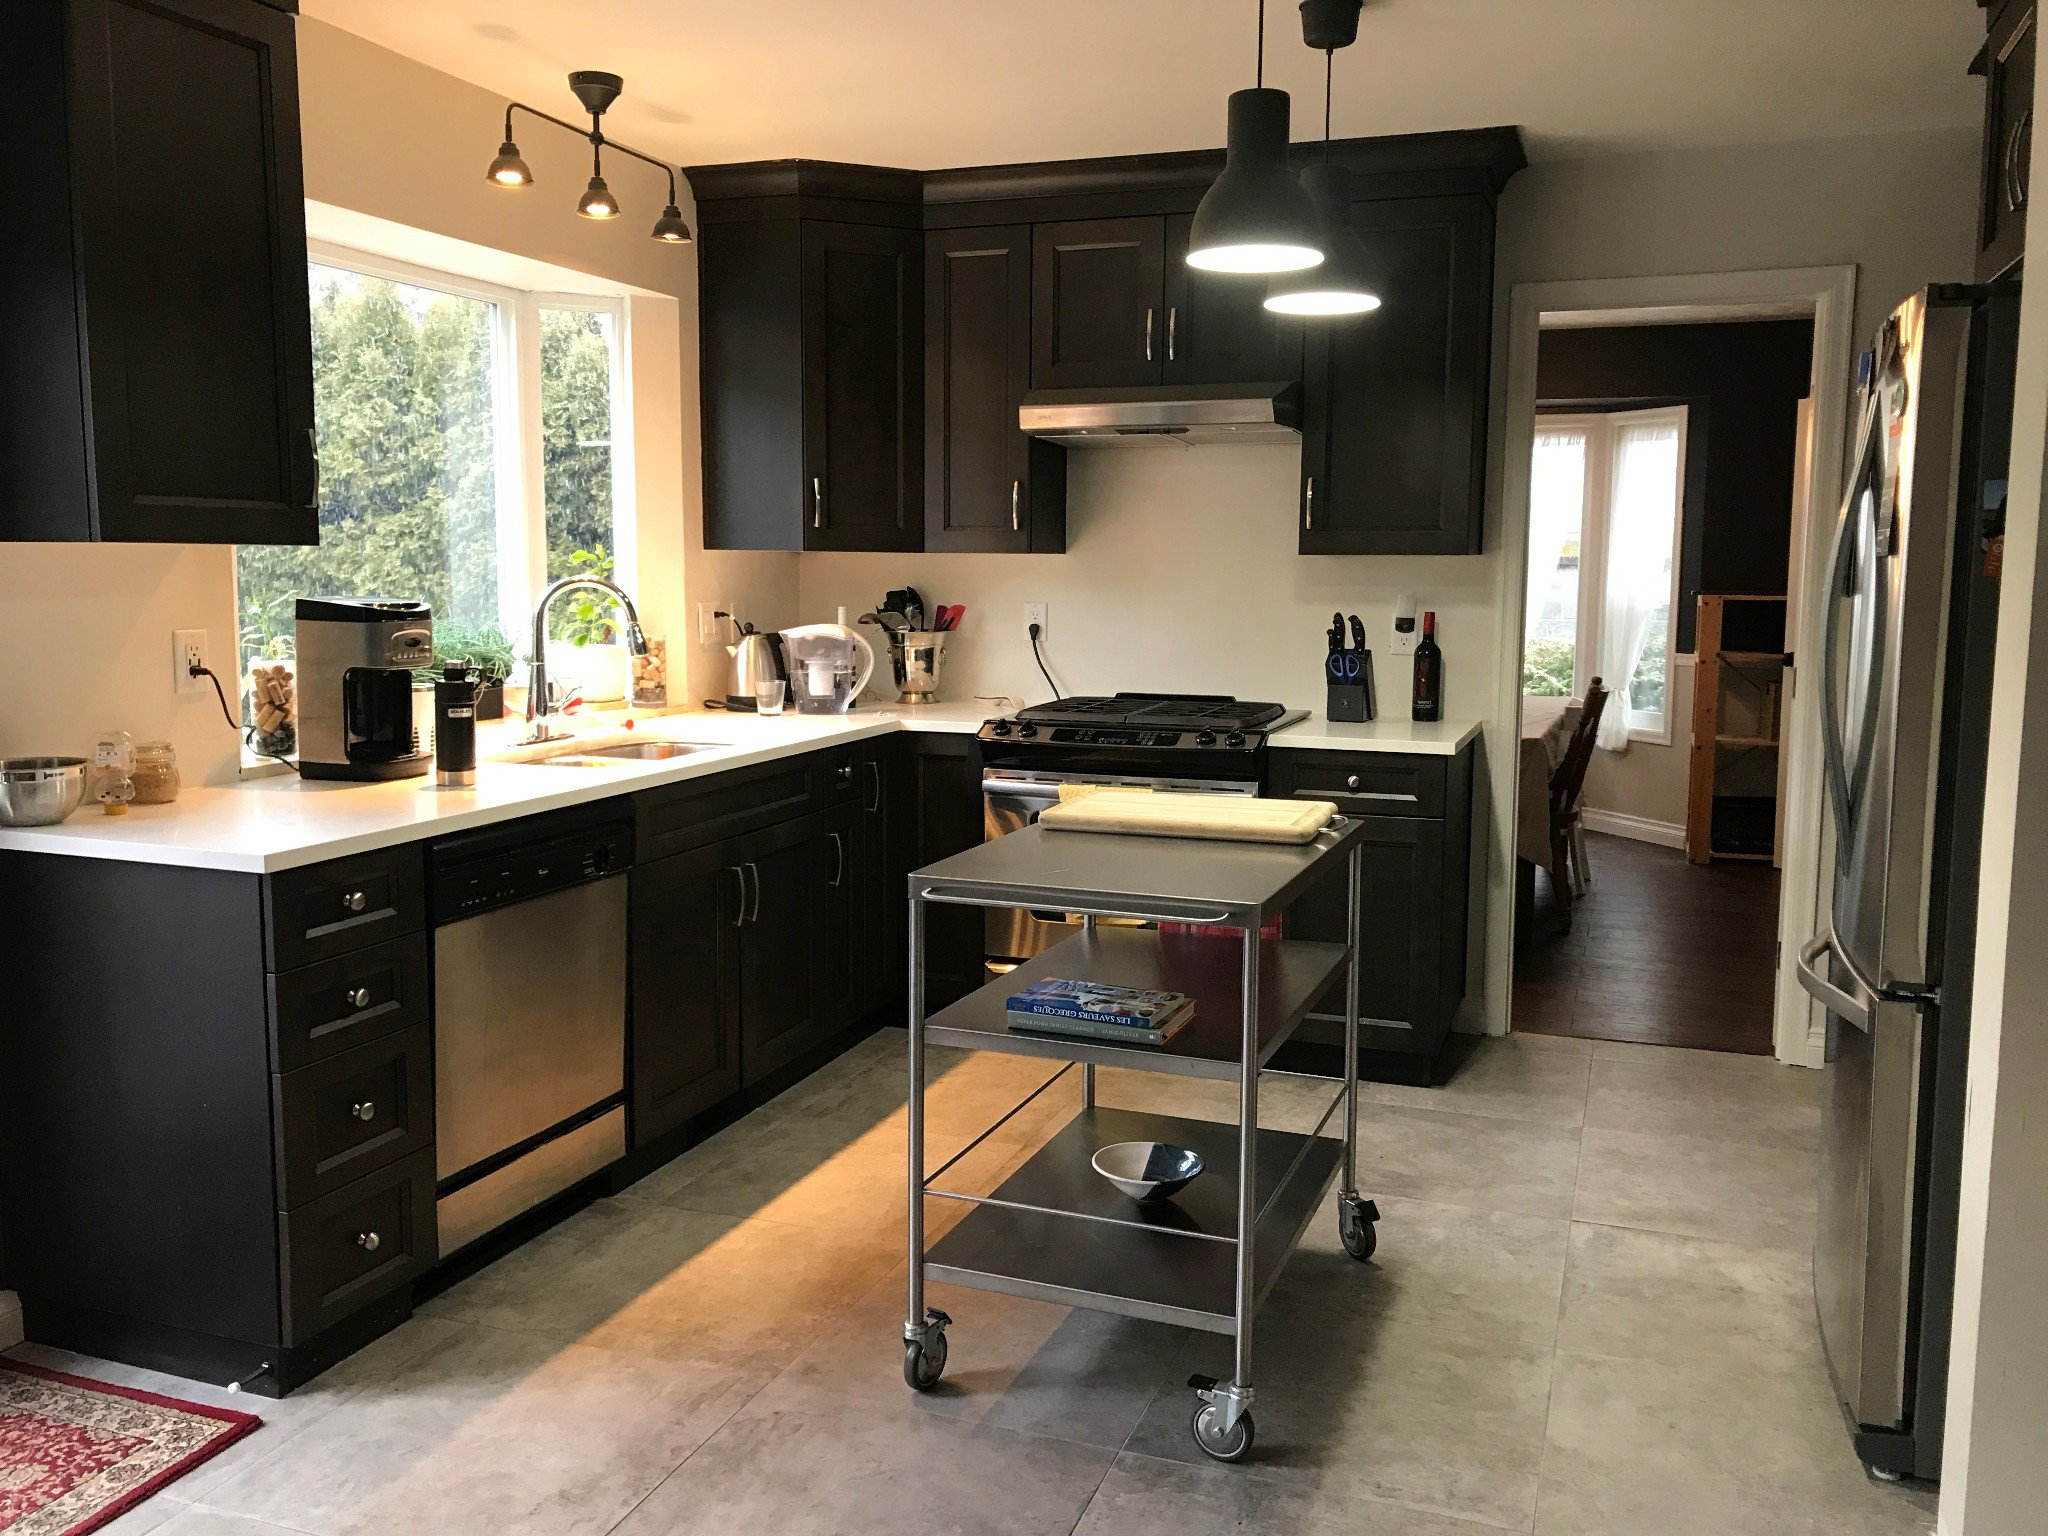 Photo 6: Photos: 32905 Alta Ave. in Abbotsford: Central Abbotsford House for rent